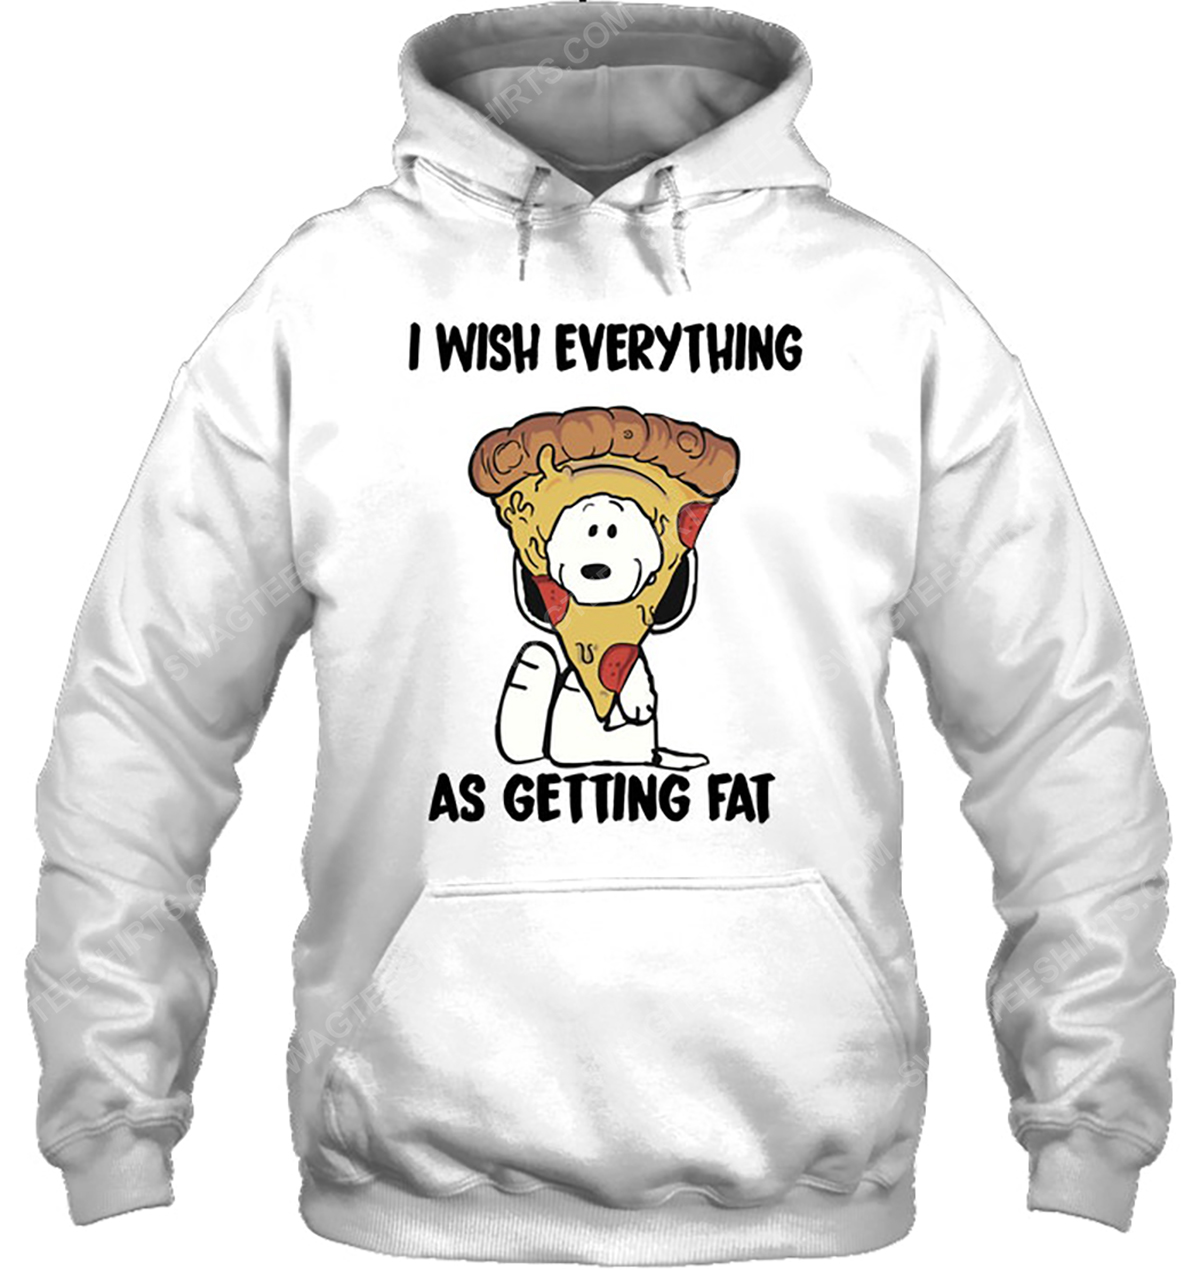 Snoopy and pizza i wish everything as getting eat hoodie 1